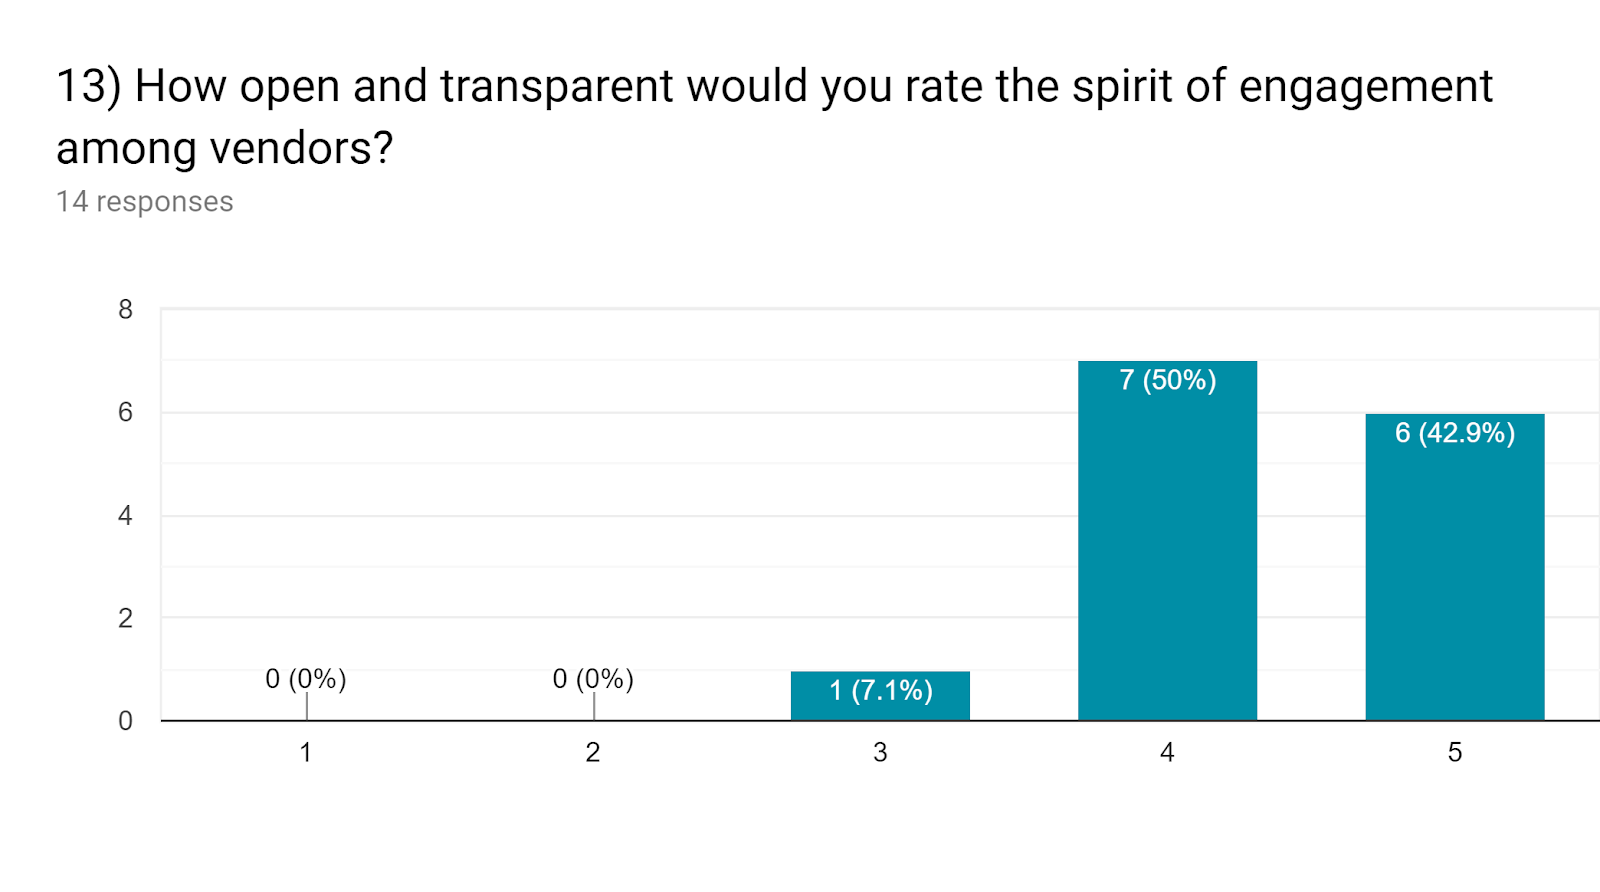 Forms response chart. Question title: 13) How open and transparent would you rate the spirit of engagement among vendors?. Number of responses: 14 responses.